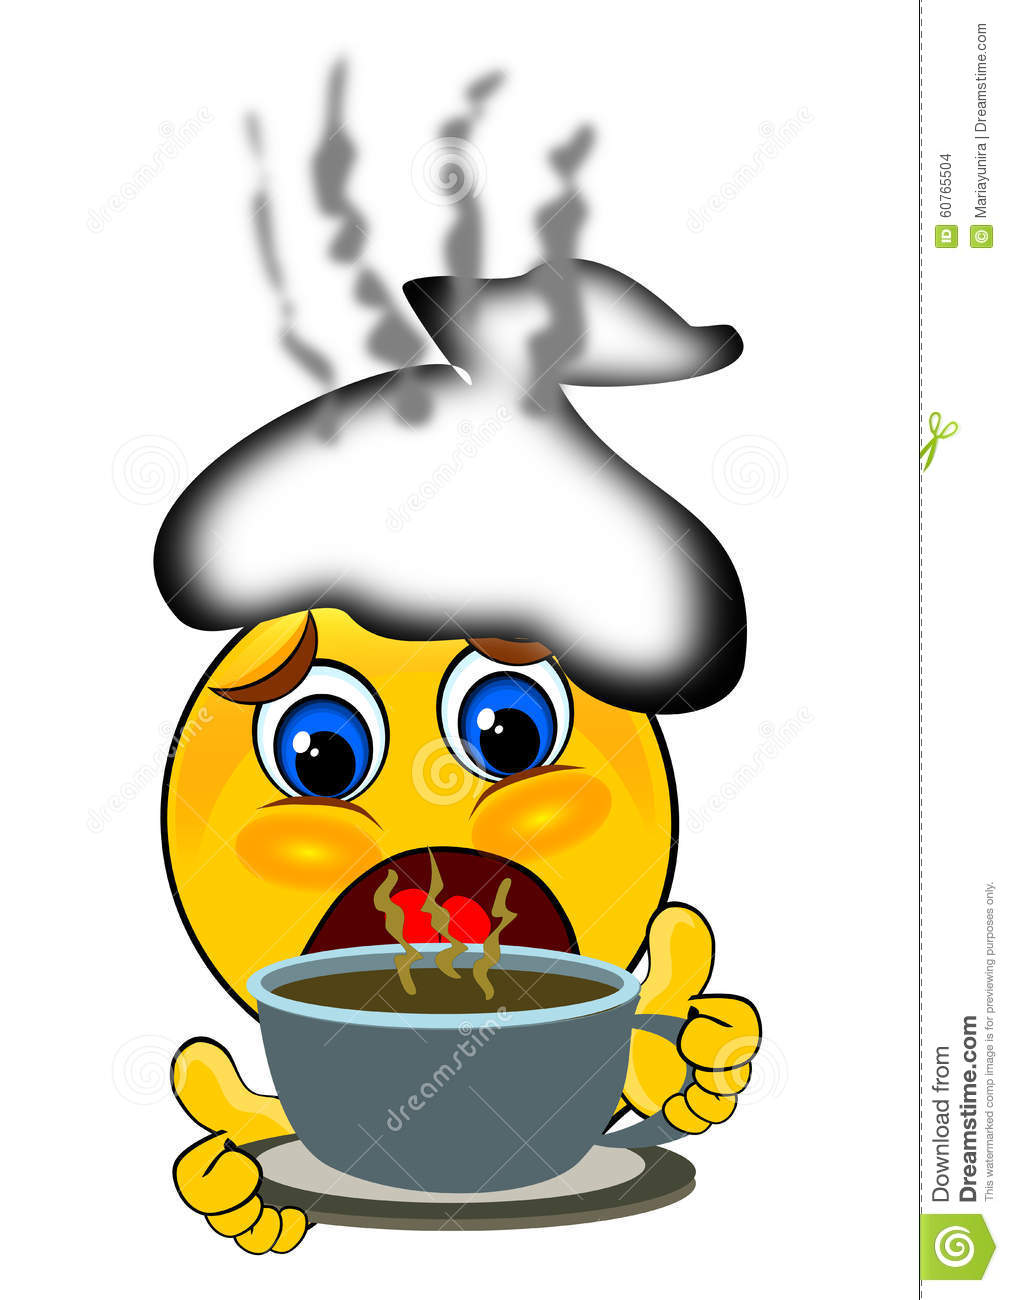 smile emoticons having cough and flu stock illustration rh dreamstime com Winking Smiley Face Clip Art Yummy Smiley Face Clip Art